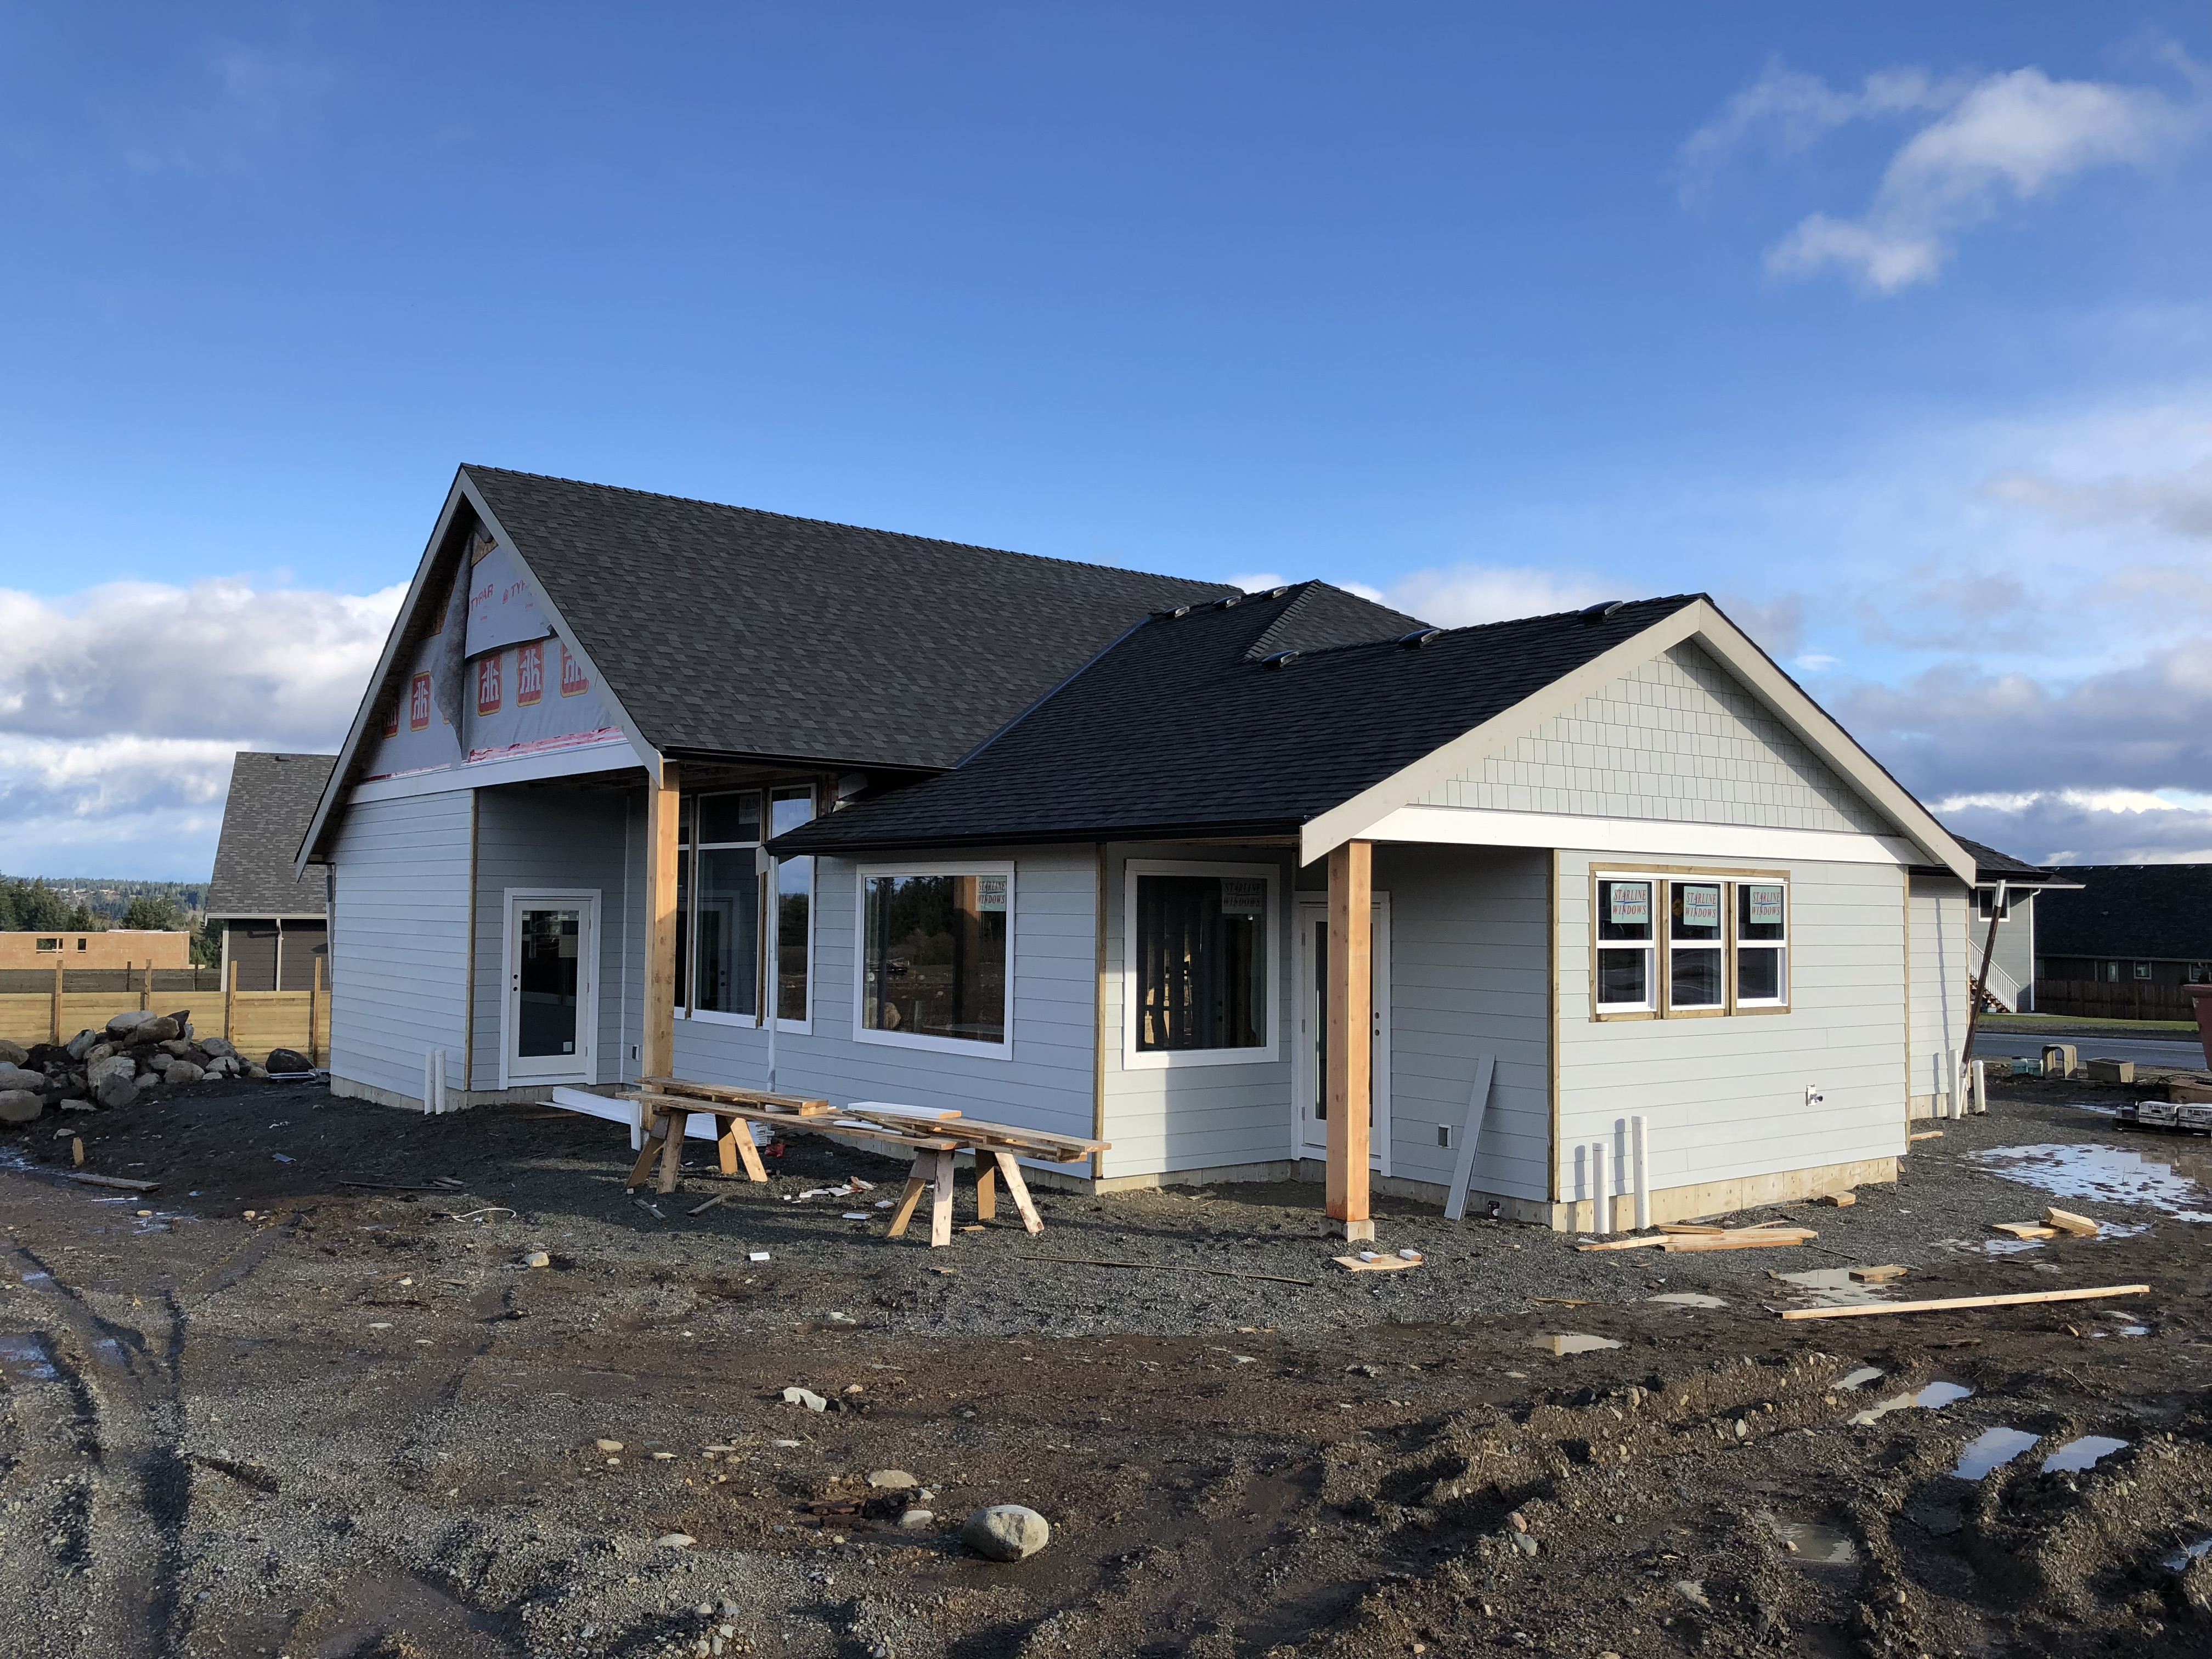 Showhome in The Ridge built by Candor Developments